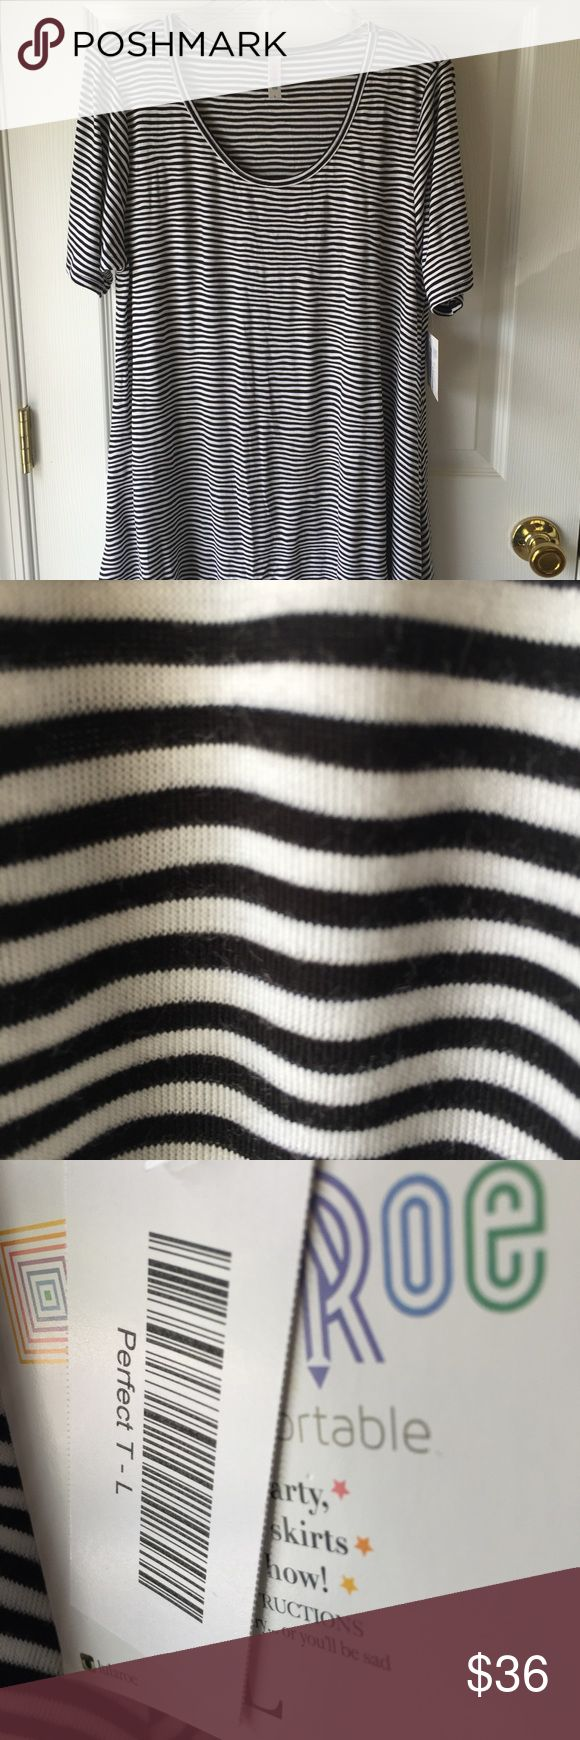 Black and White Striped Perfect Tee Size Large Lularoe Black and White striped Perfect Tee size Large; NWT. LuLaRoe Tops